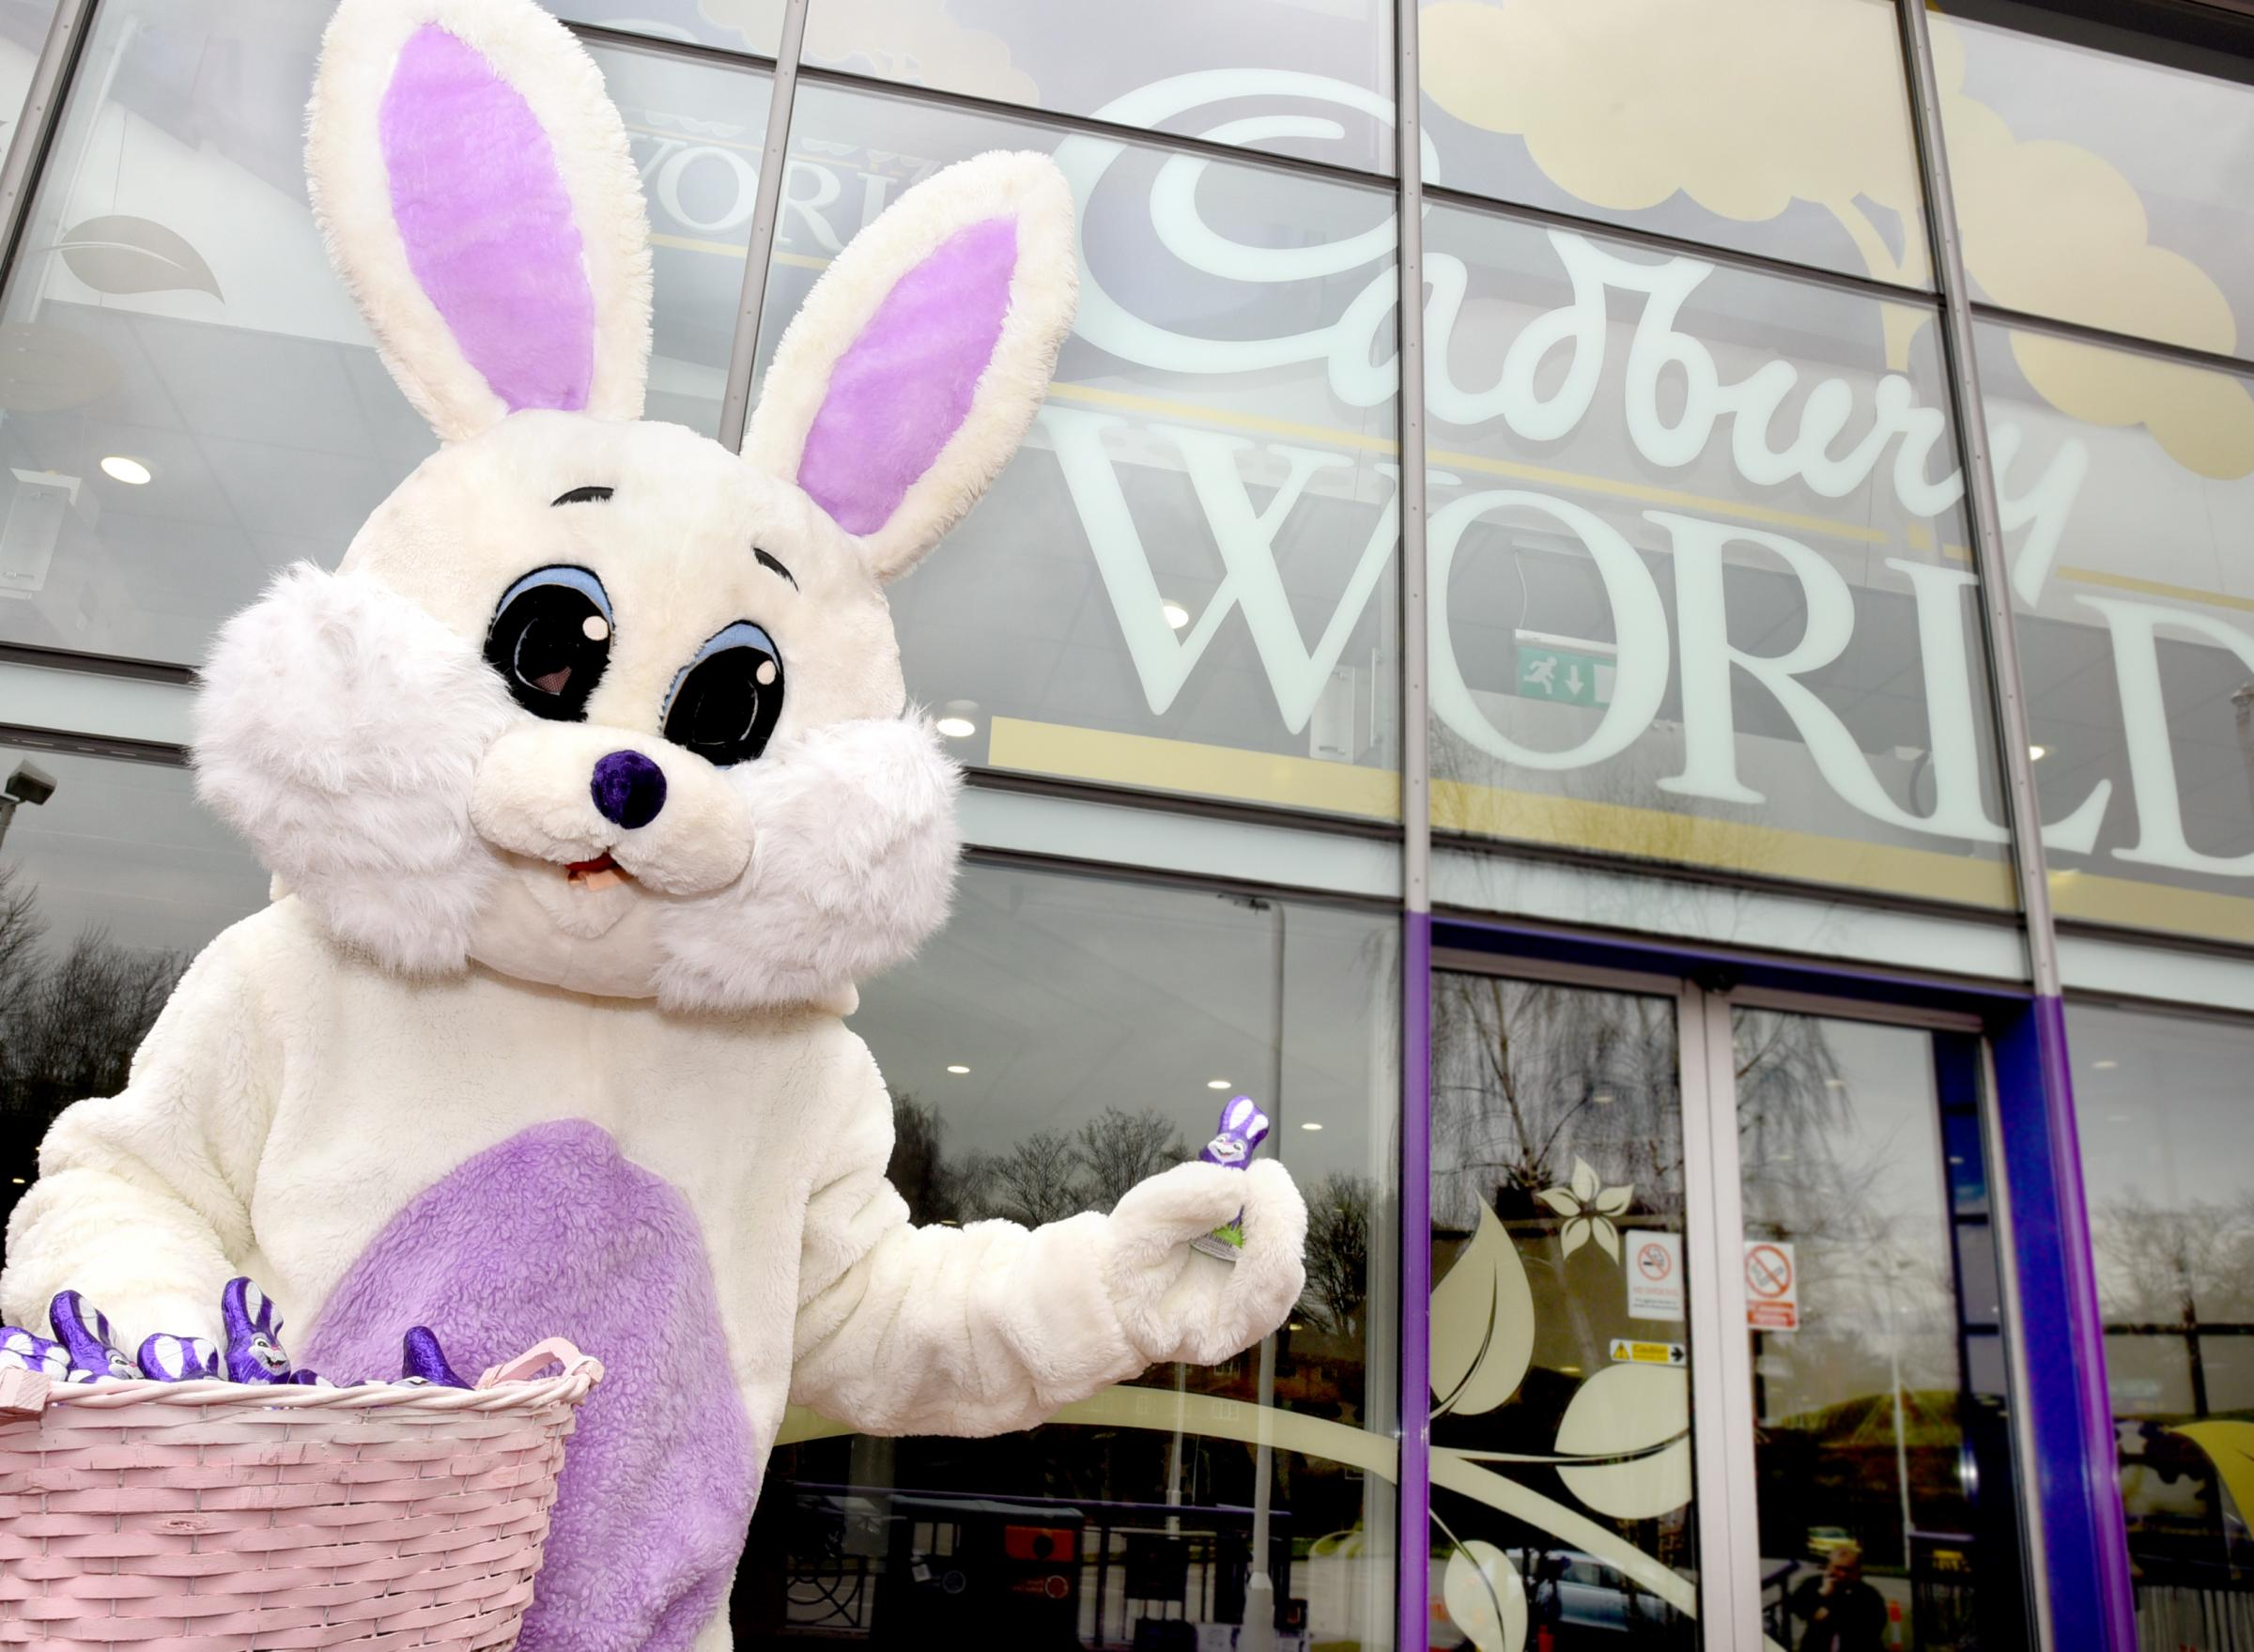 Easter is the obvious time to visit Cadbury World and the surrounding Bourneville area on the south of Birmingham